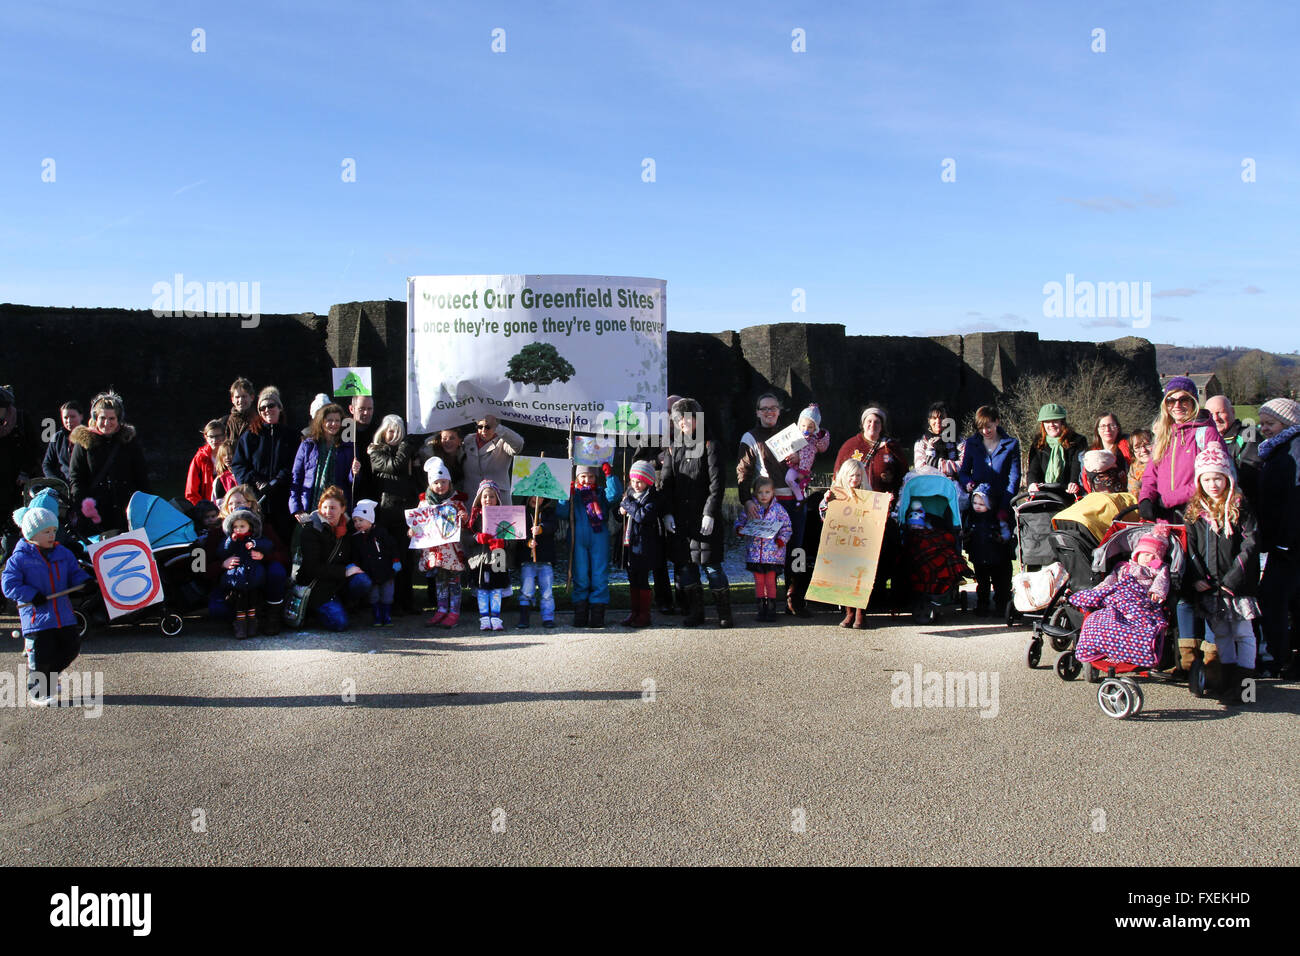 caerphilly greenfield protest - Stock Image